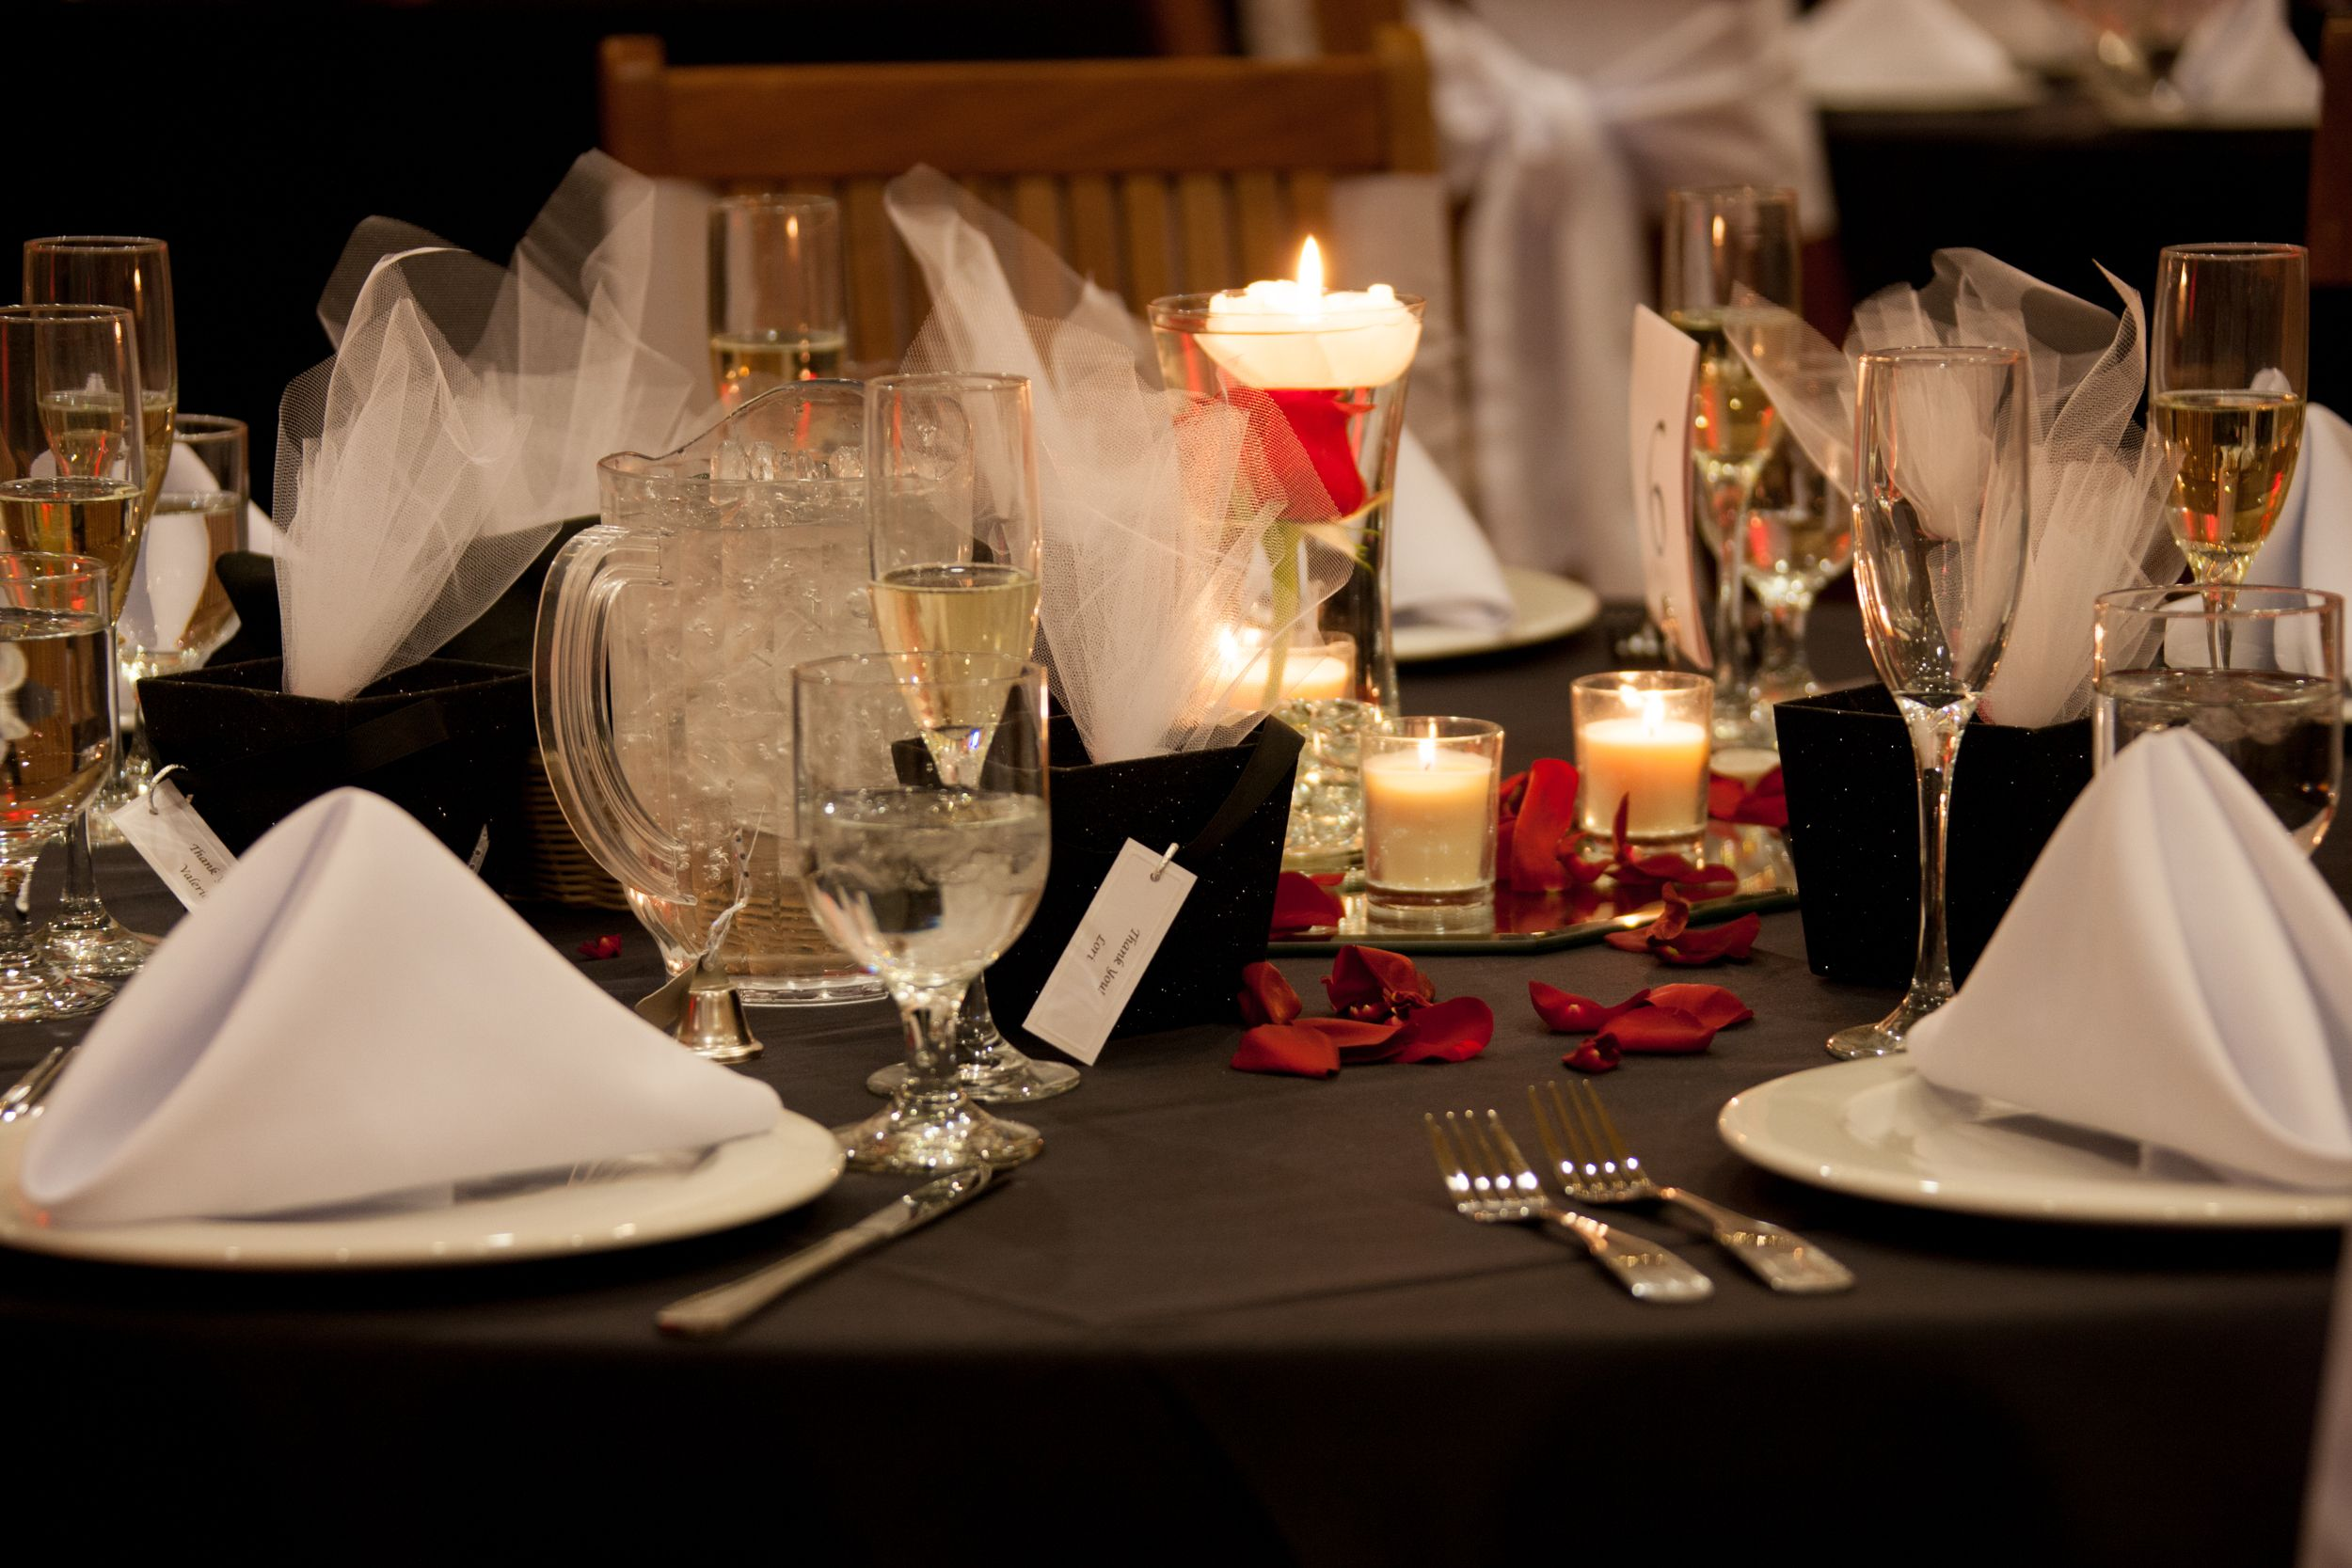 Red and black wedding decor  Wedding decor Our colors were Red Black u White  Mills Wedding